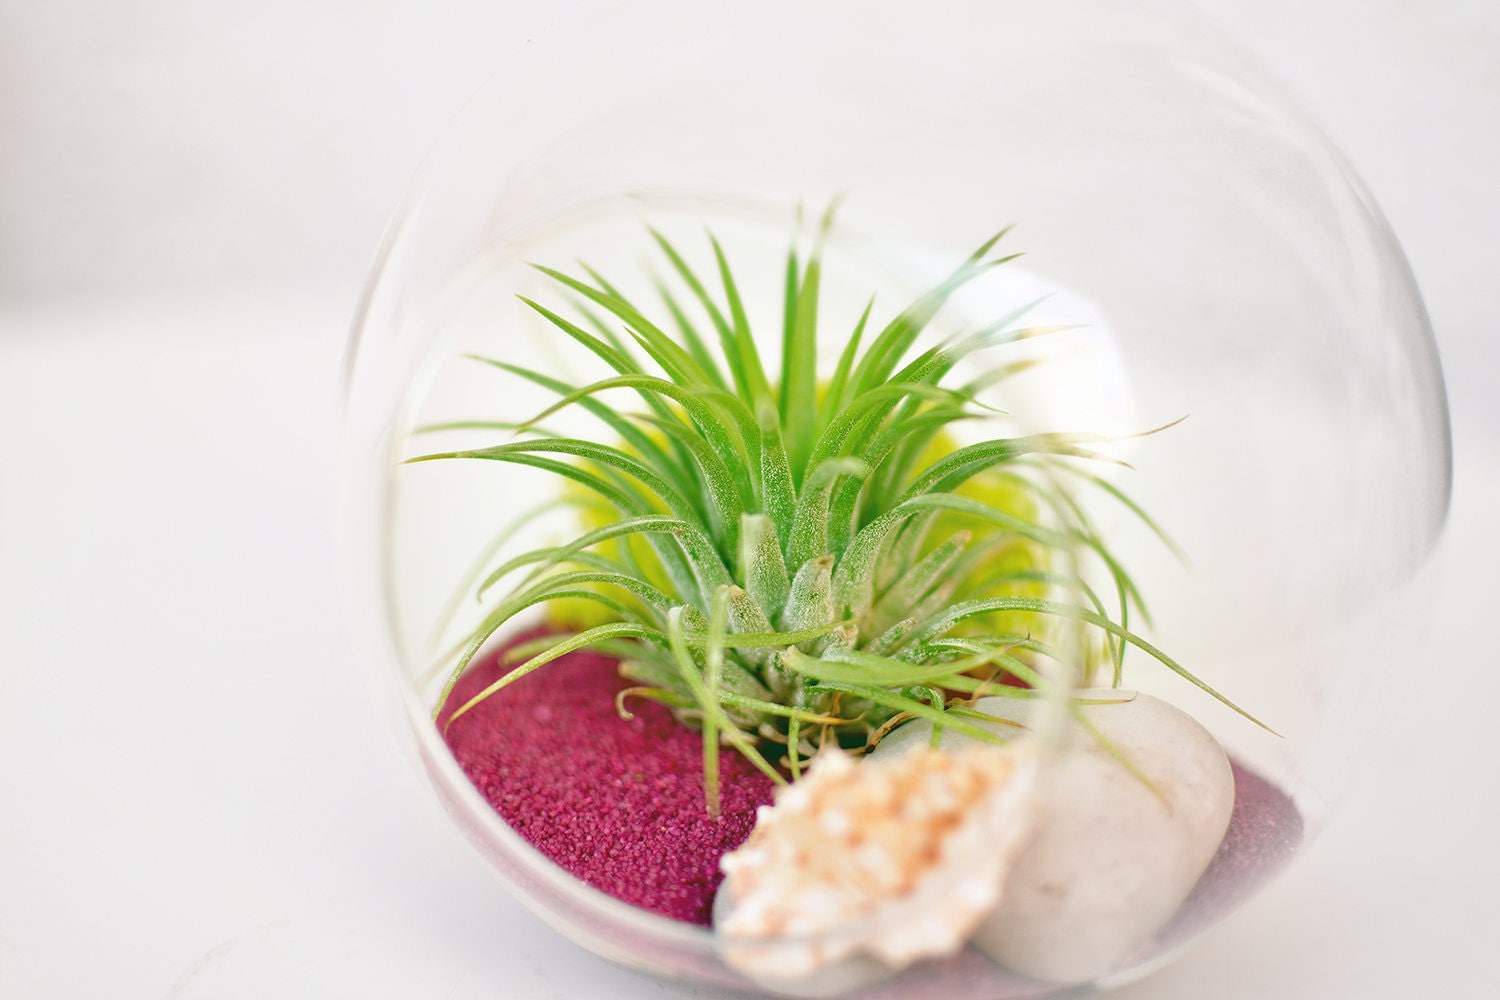 tillandsia ionantha rubra pflanze h ngen im glas vase. Black Bedroom Furniture Sets. Home Design Ideas